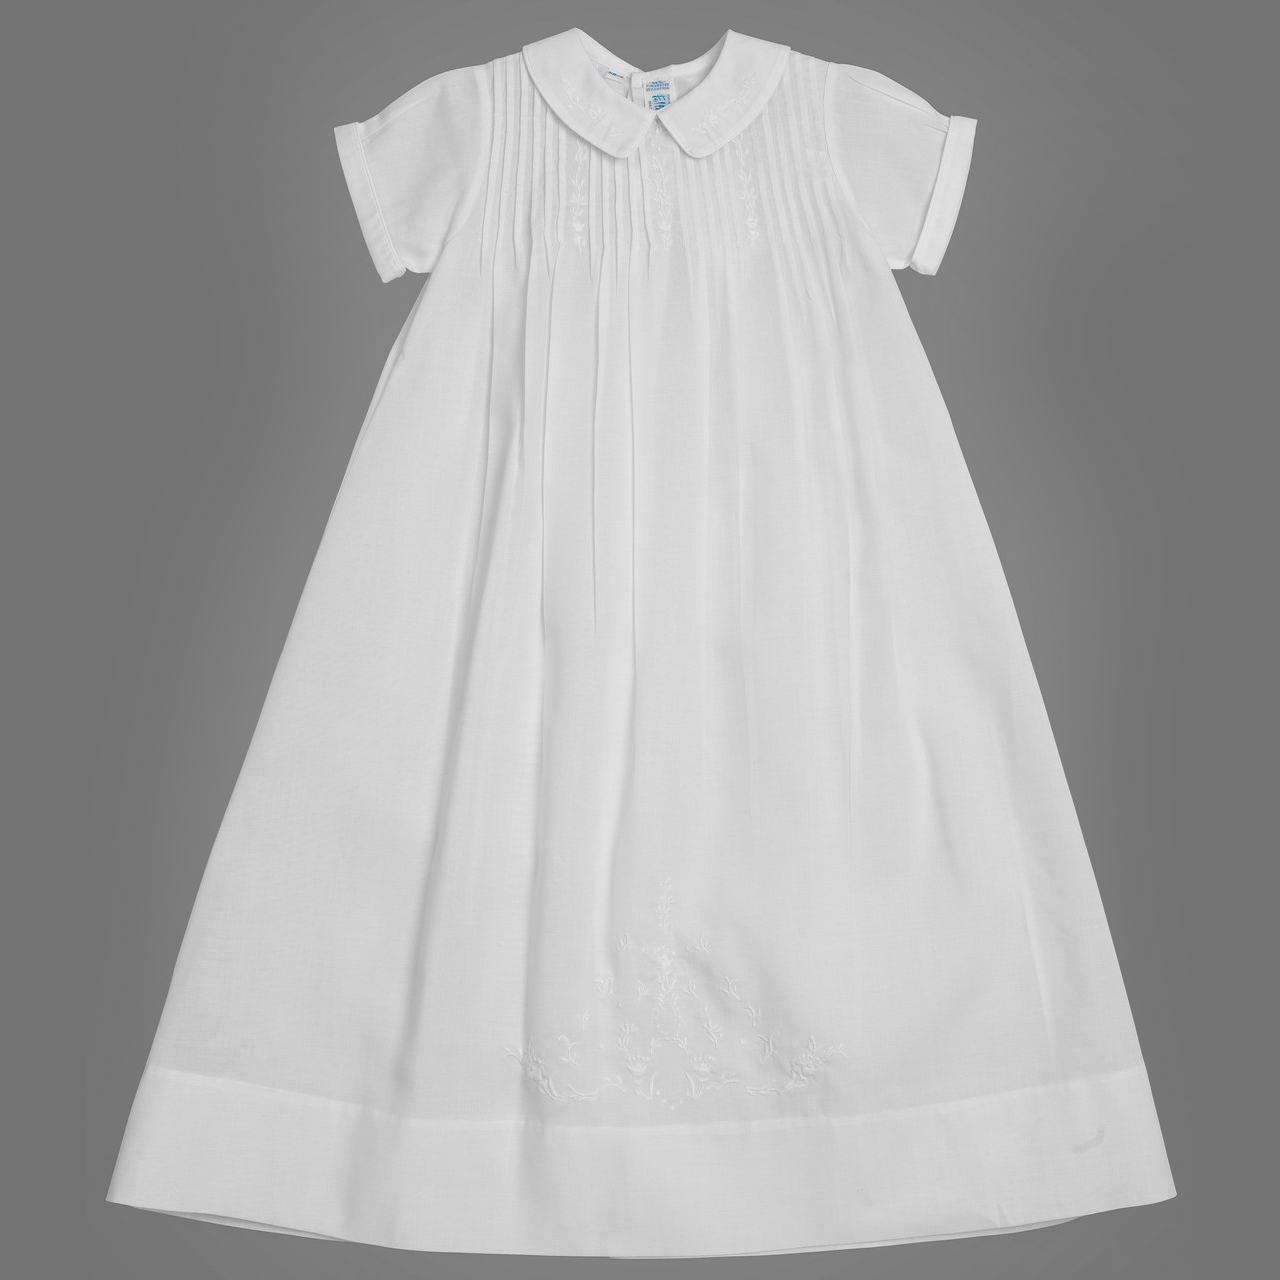 Feltman Brothers Baby Girls Solid White Embroidered Slip Dress with Collar